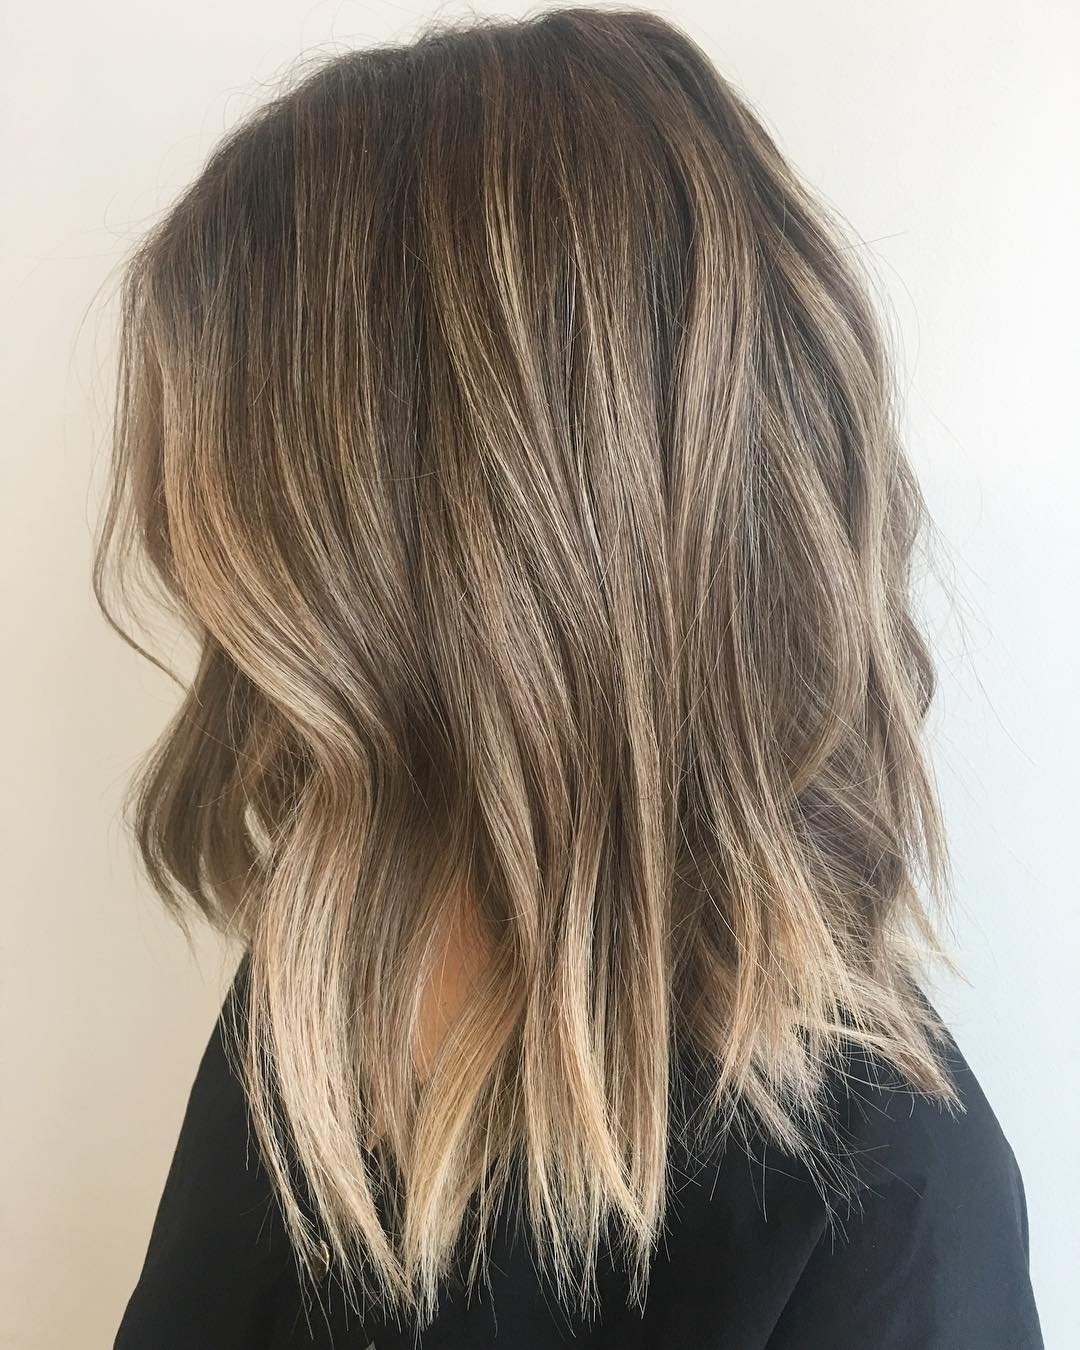 10 Unique Blonde And Brown Hair Ideas